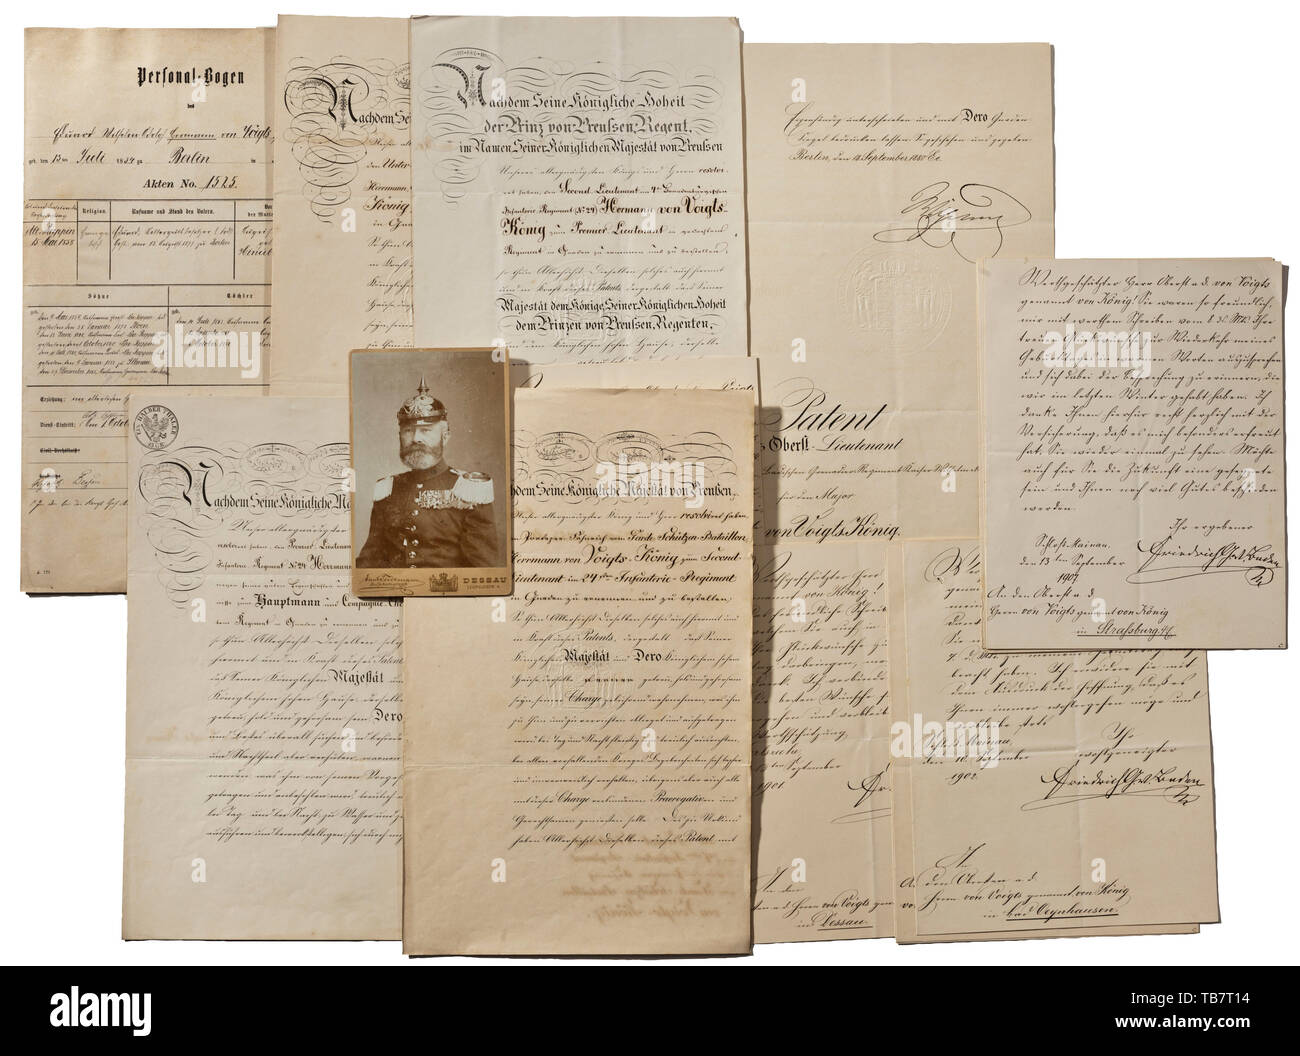 Oberst Hermann von Voigts-König - certificates and documents belonging to the commander of the 1st/2nd Badisches Landwehr-Regt. 111, Patent to Portepee-Fähnrich (cadet officer) in the Prussian Garde-Schützen-Bataillon in 1852, to Second Lieutenant in the 24th (4th Brandenburg) Infanterie-Regiment in 1853 and to Premier-Lieutenant in 1860, all unsigned. Patent to Hauptmann and company commander in 1866, to Major in the 2nd Badisches Grenadier Regiment Kaiser Wilhelm no. 110 in 1873 and to Oberst-Lieutenant in 1880. all three documents bearing the , Additional-Rights-Clearance-Info-Not-Available - Stock Image